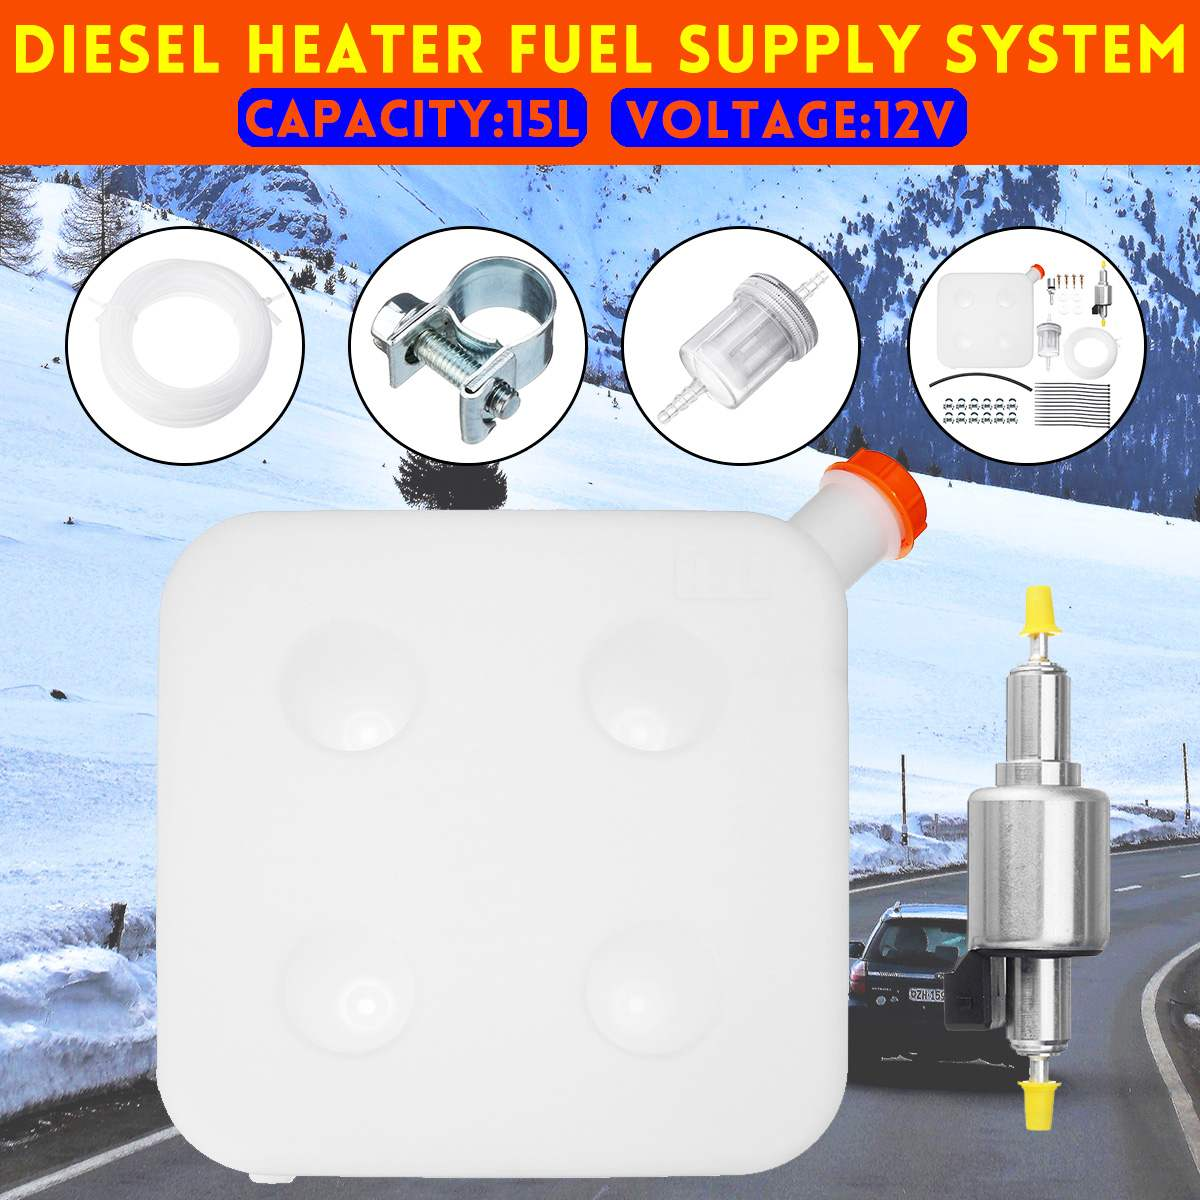 Car Heater Diesel Air Heater Accessories <font><b>15L</b></font> <font><b>Tank</b></font> 12V Fuel Pump System 4 <font><b>Tank</b></font> Hole For Diesel Air Heater Parts Replacement Set image